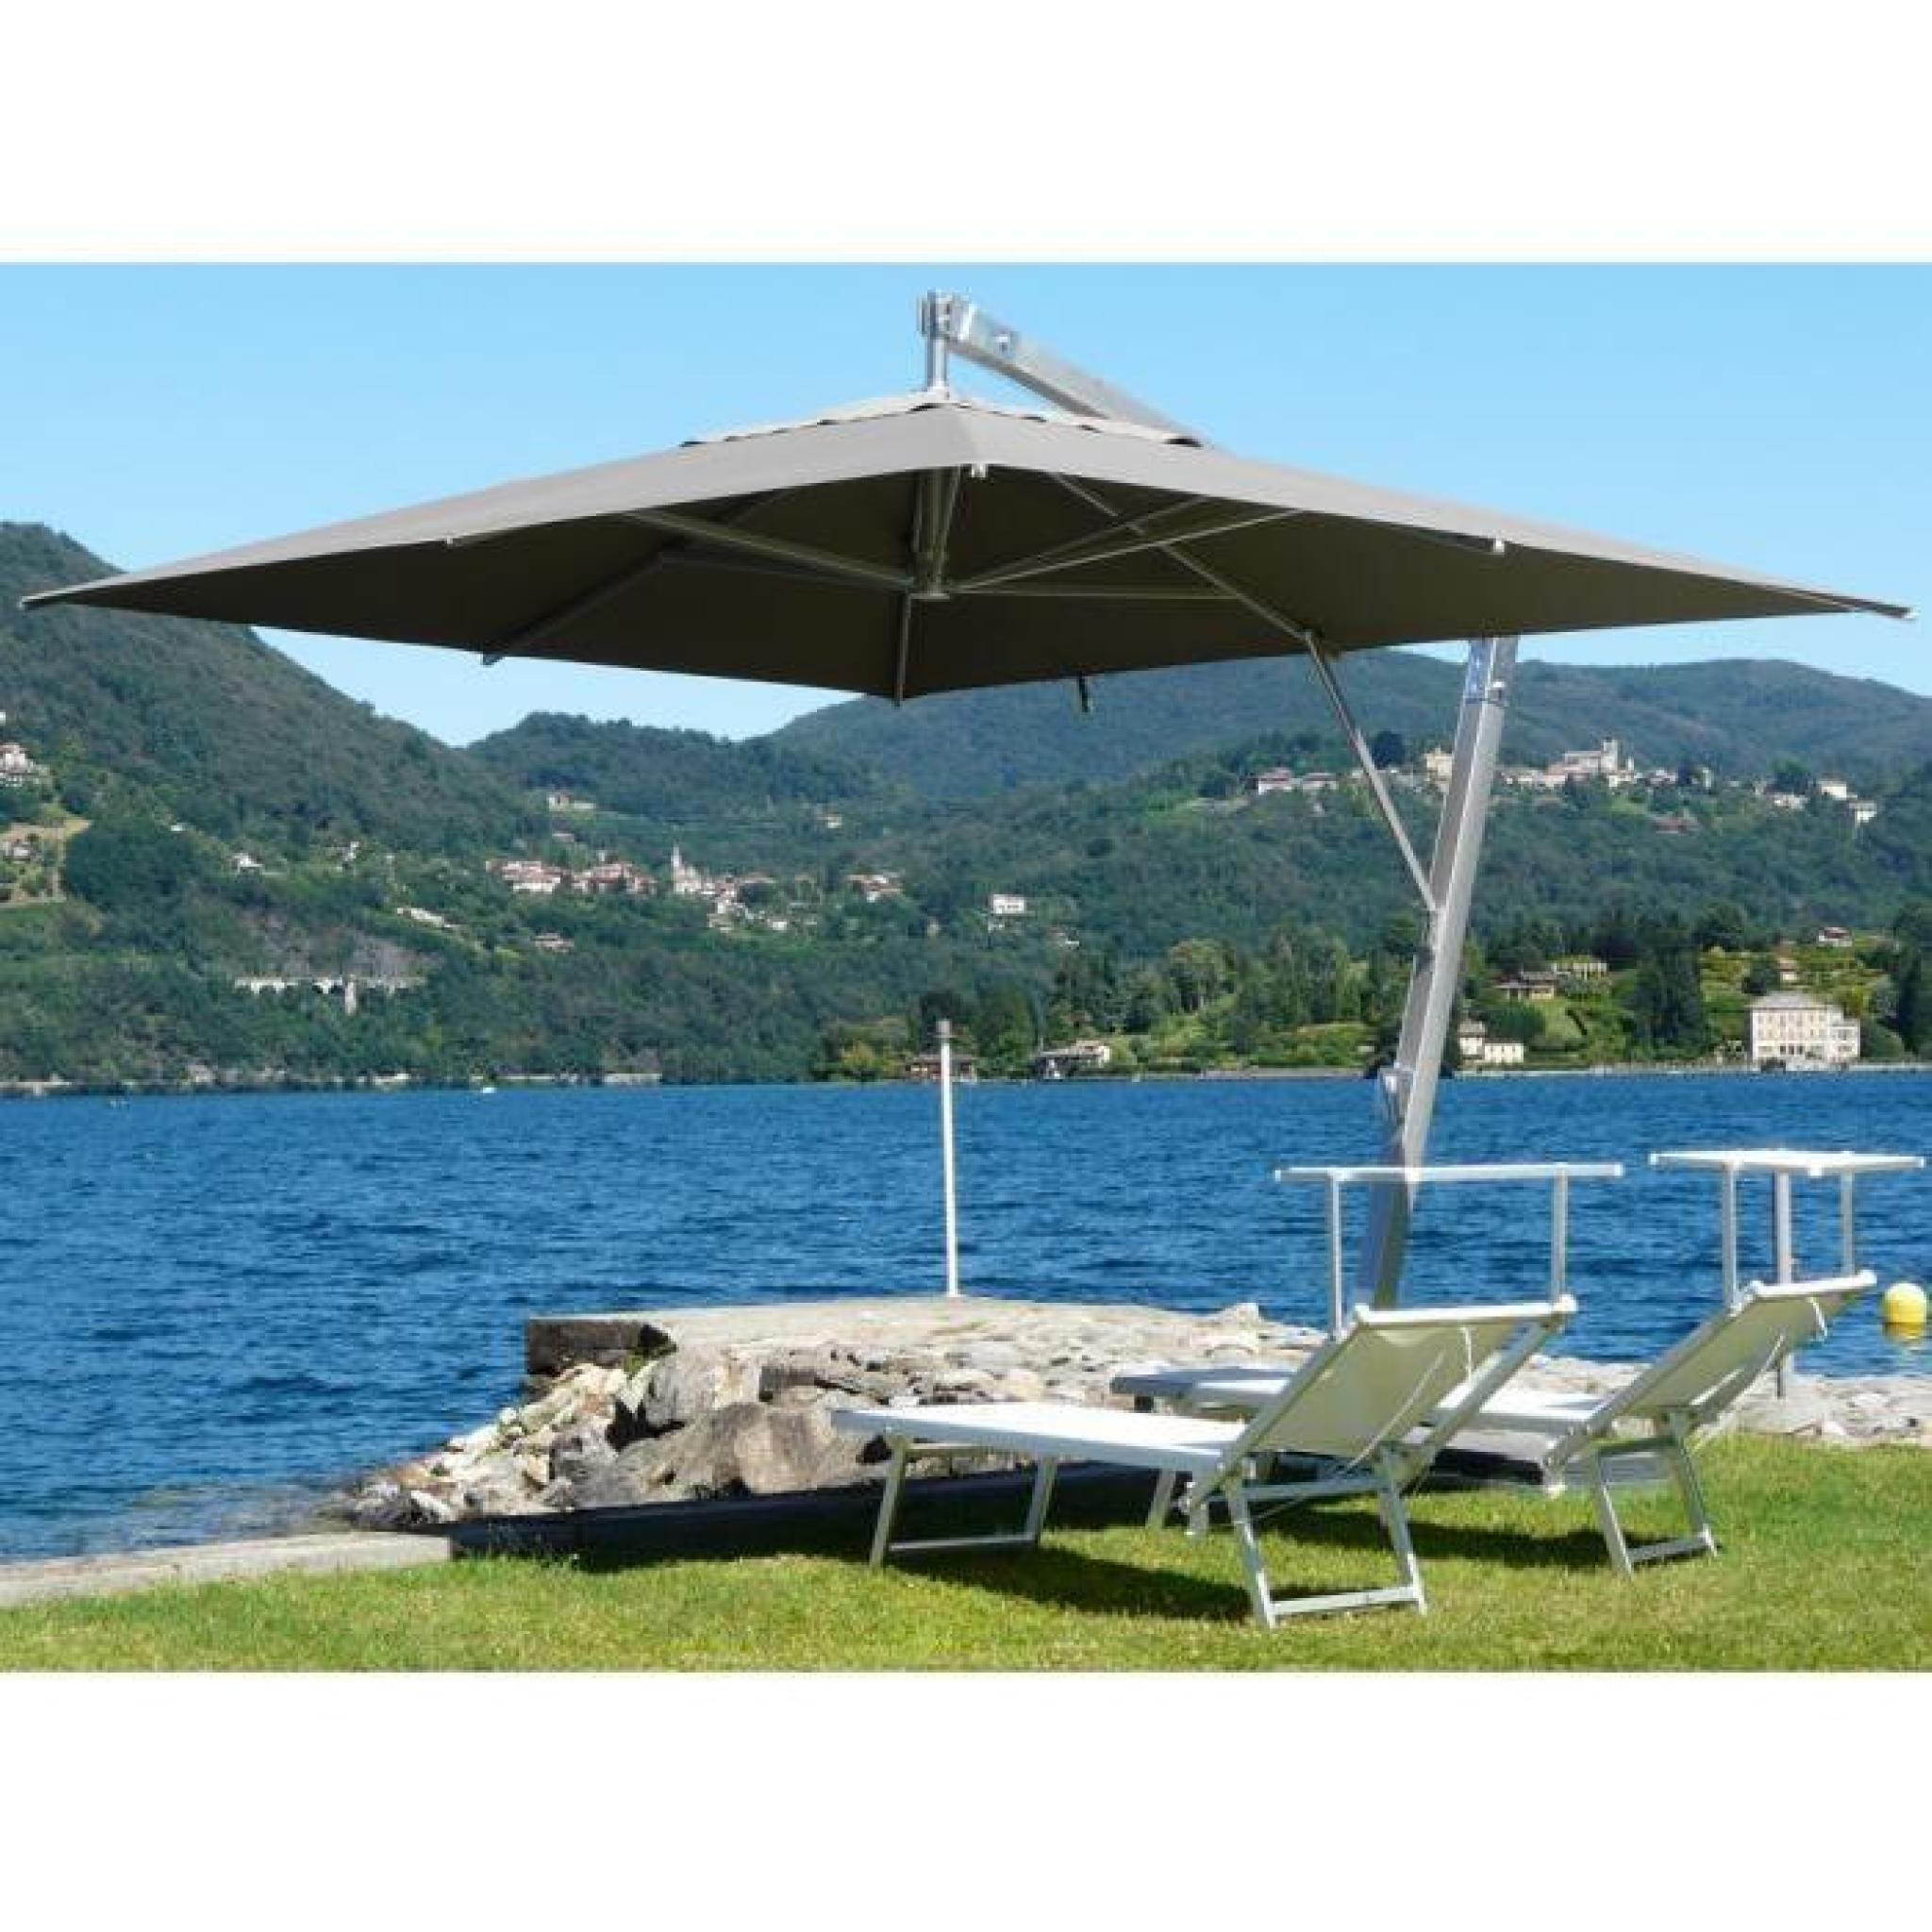 parasol rectangulaire d port coloris taupe h 340cm x d 300 x 400 8 baleines achat vente. Black Bedroom Furniture Sets. Home Design Ideas